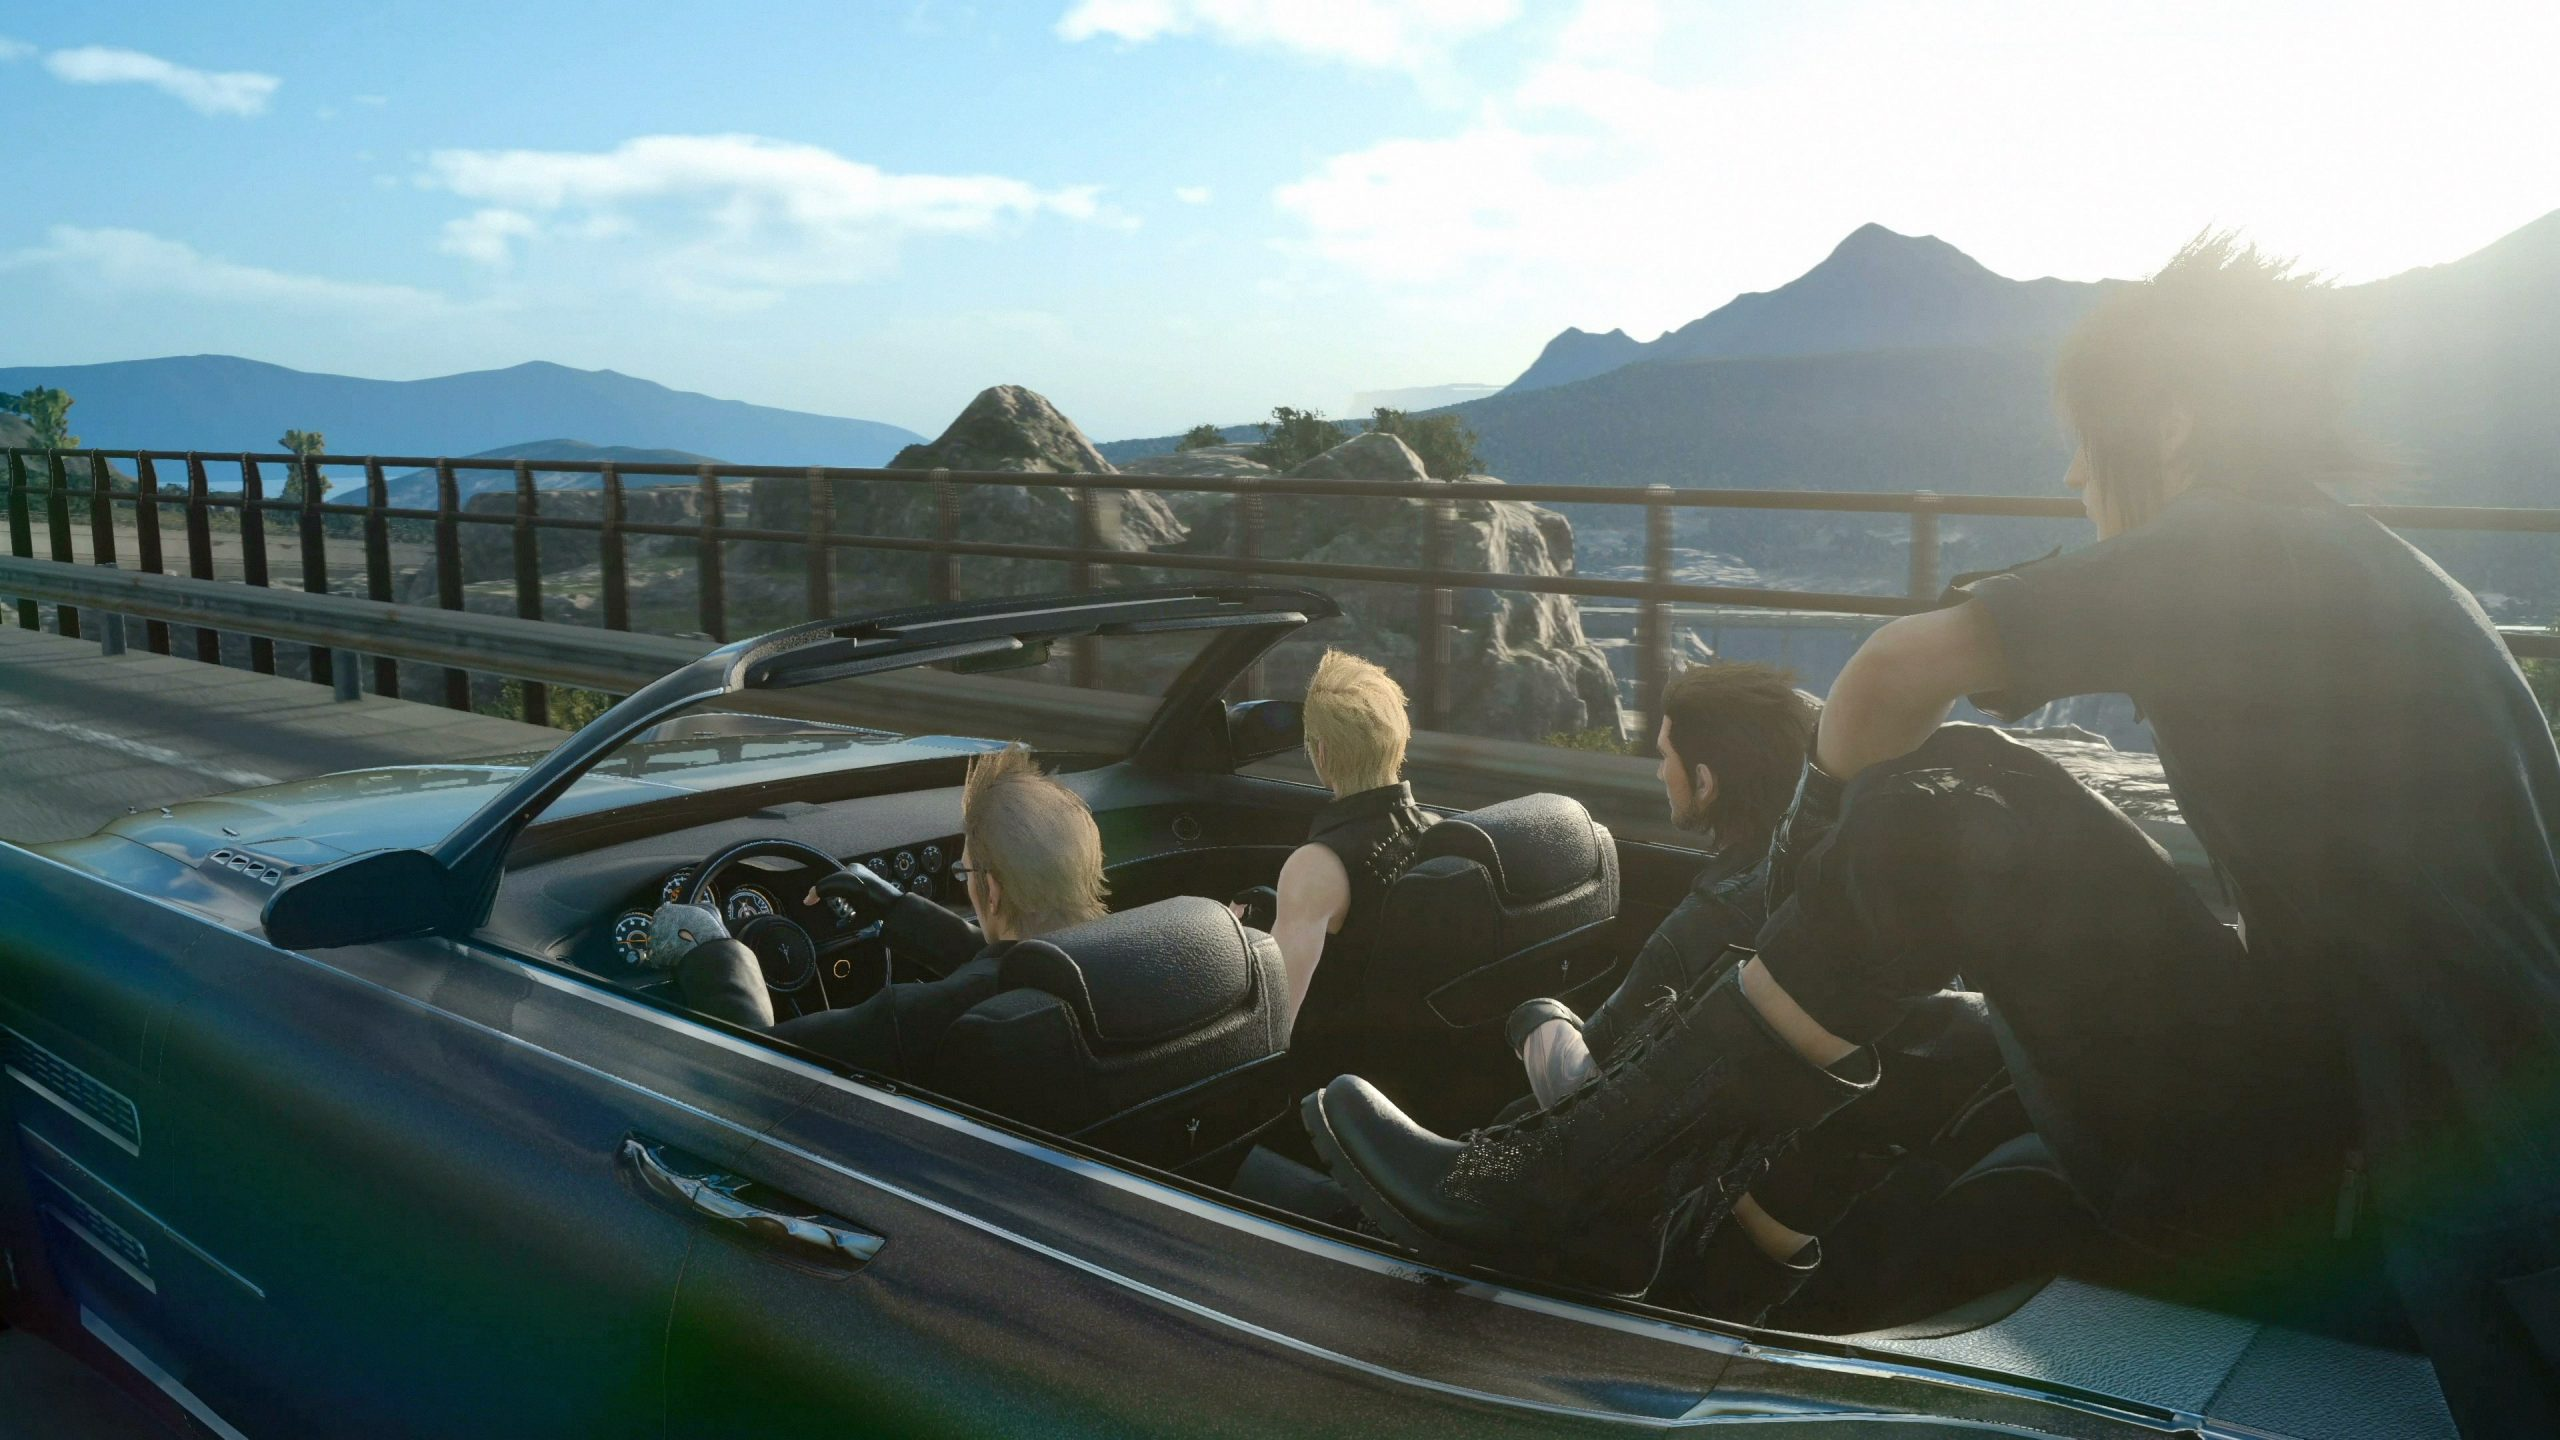 Screenshot From Final Fantasy XV Featuring Noctis, Ignis, Prompto, and Gladiolus Driving The Regalia Through Duscae